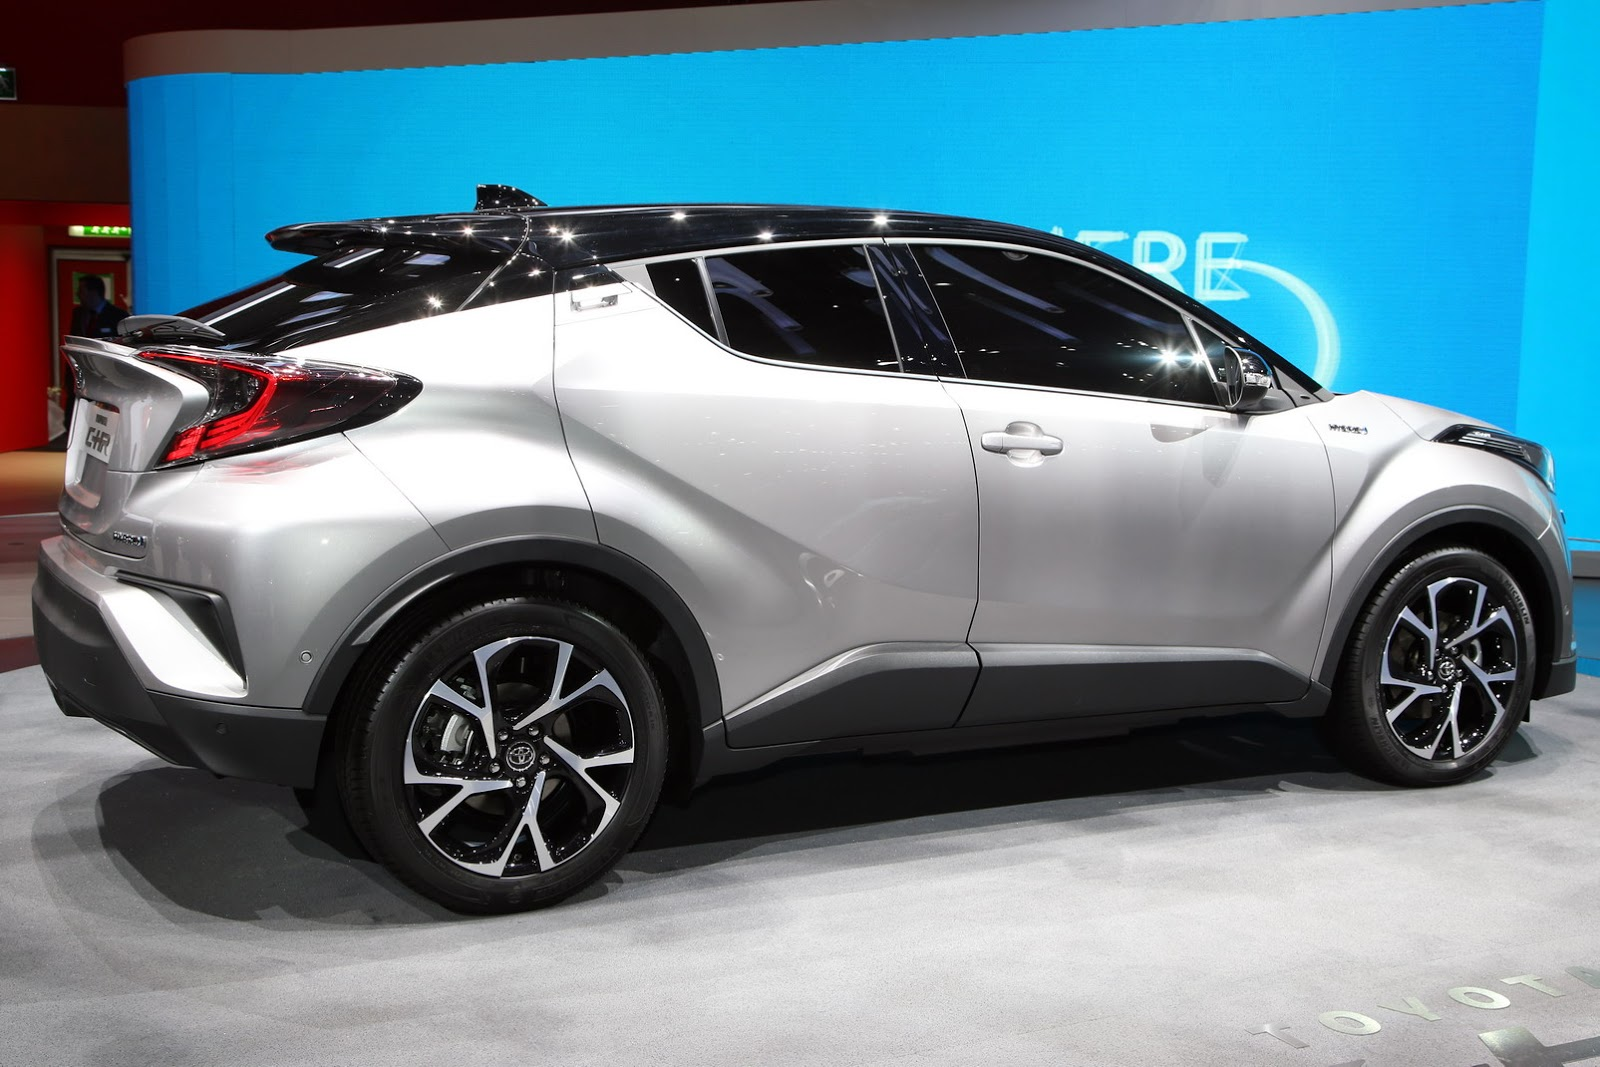 Used Toyota Rav4 Hybrid >> New Toyota C-HR Gets 1.2L Turbo, 2.0L And 1.8L Hybrid Powertrains [New Pics] | carscoops.com